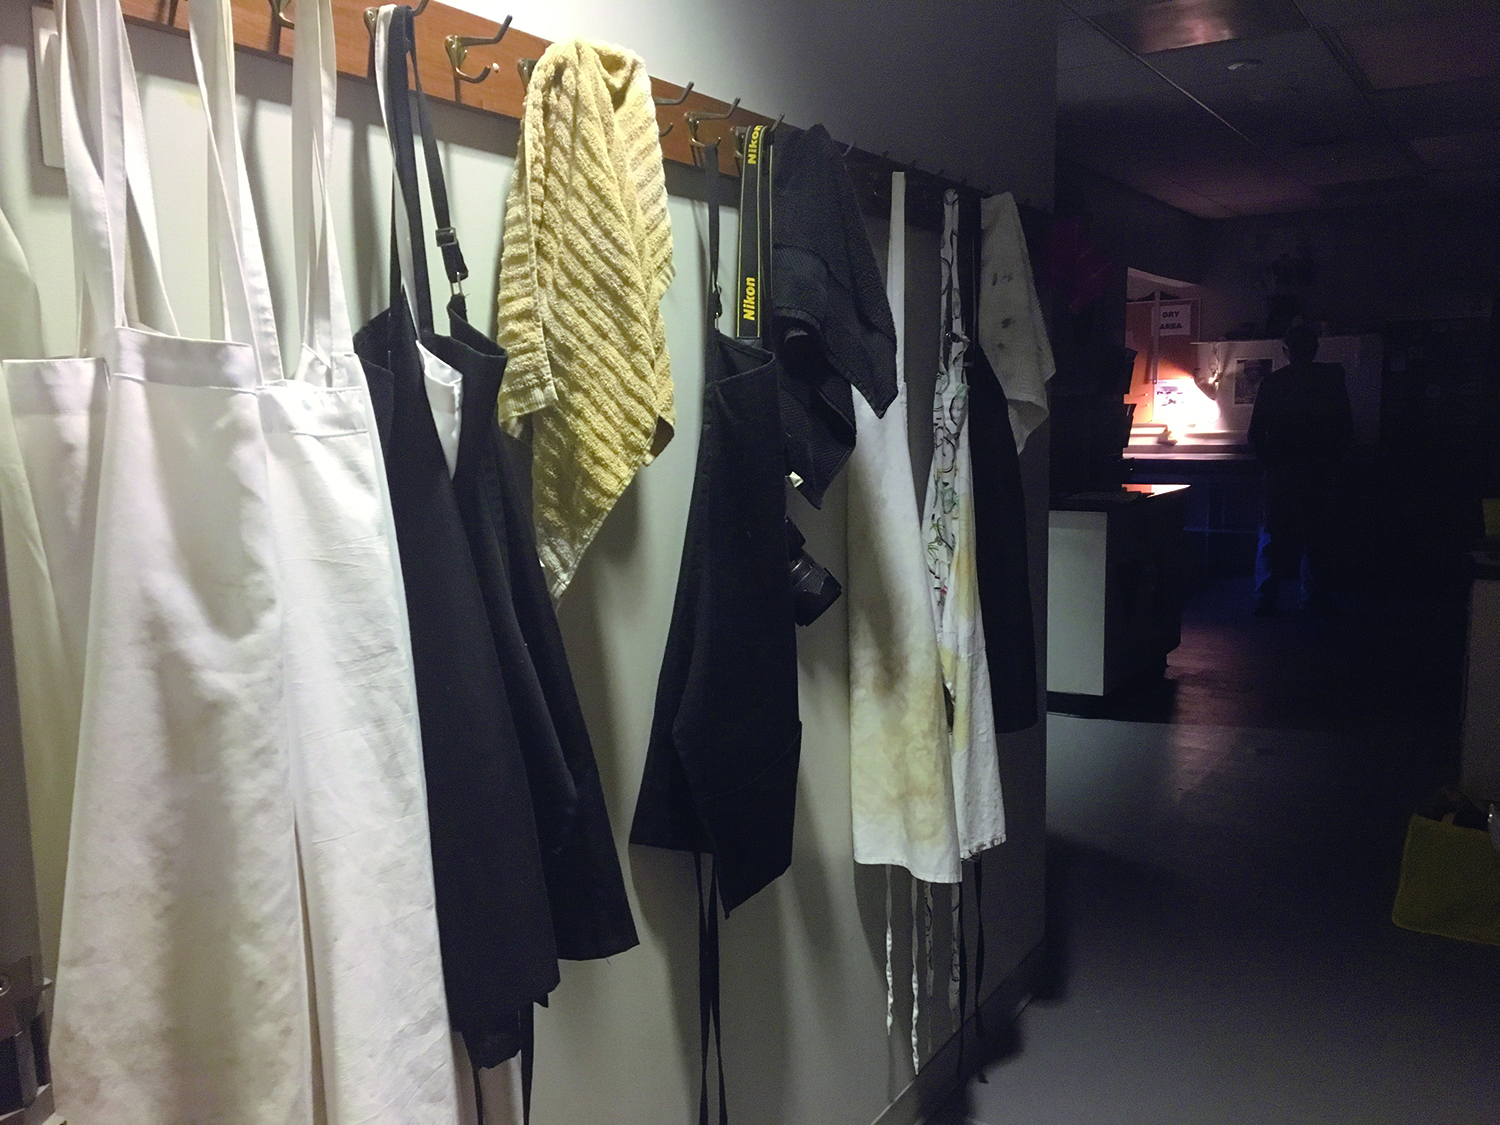 AACC students who want to use art spaces on campus, like the photography darkroom in Cade, can pay to use the labs without signing up for class.